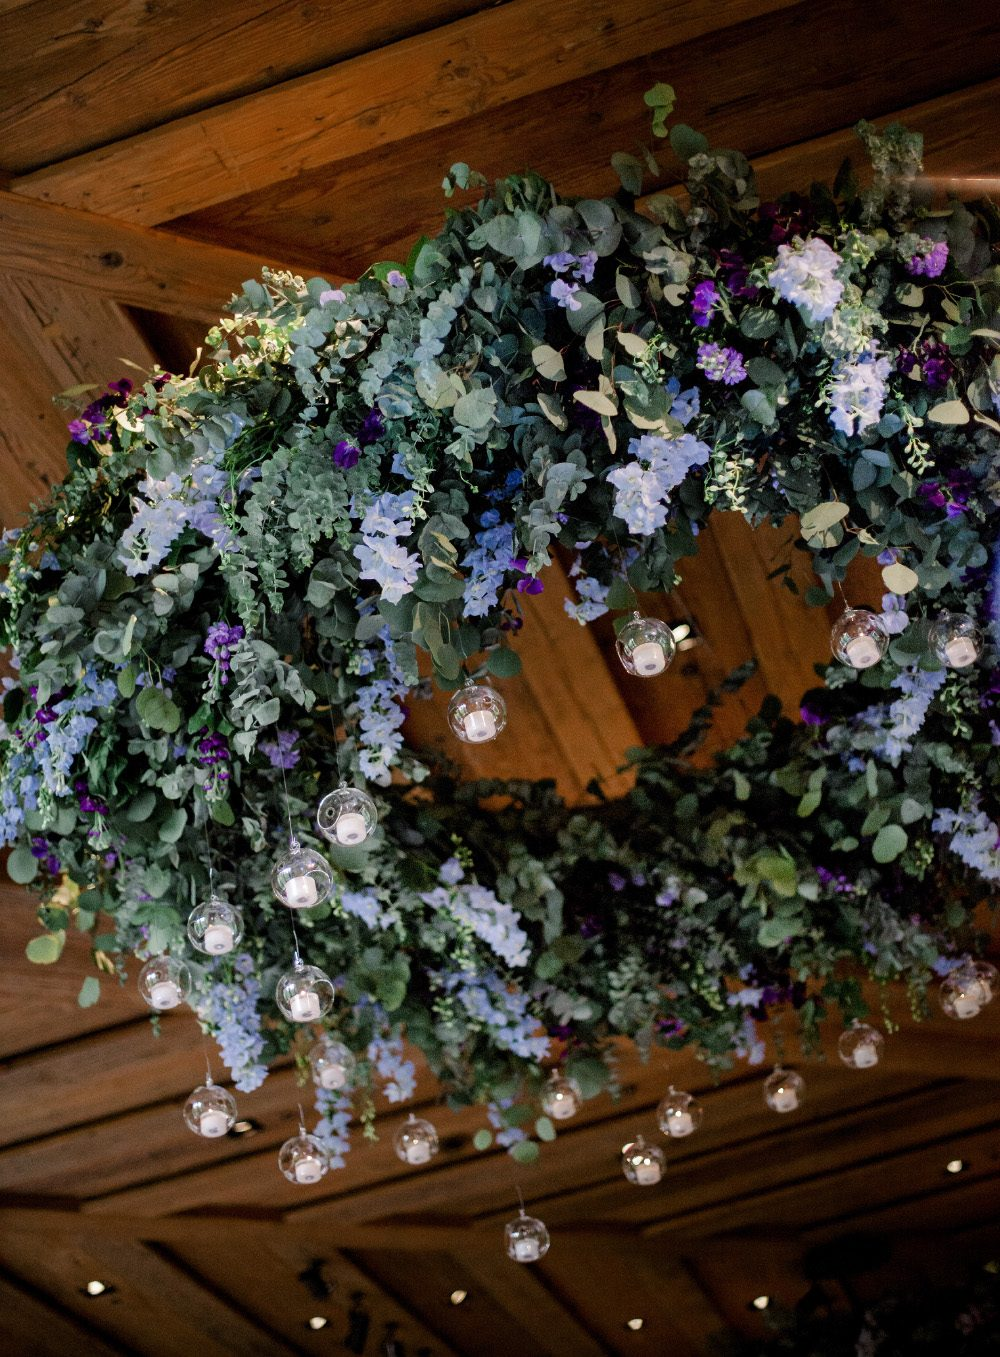 Chuppah, jewish wedding, the alpina gstaad, luxury wedding switzerland, aisle flowers, blumen baldachin, zeremoniedekoration, hochzeitsfloristik, ceiling, purple, silver